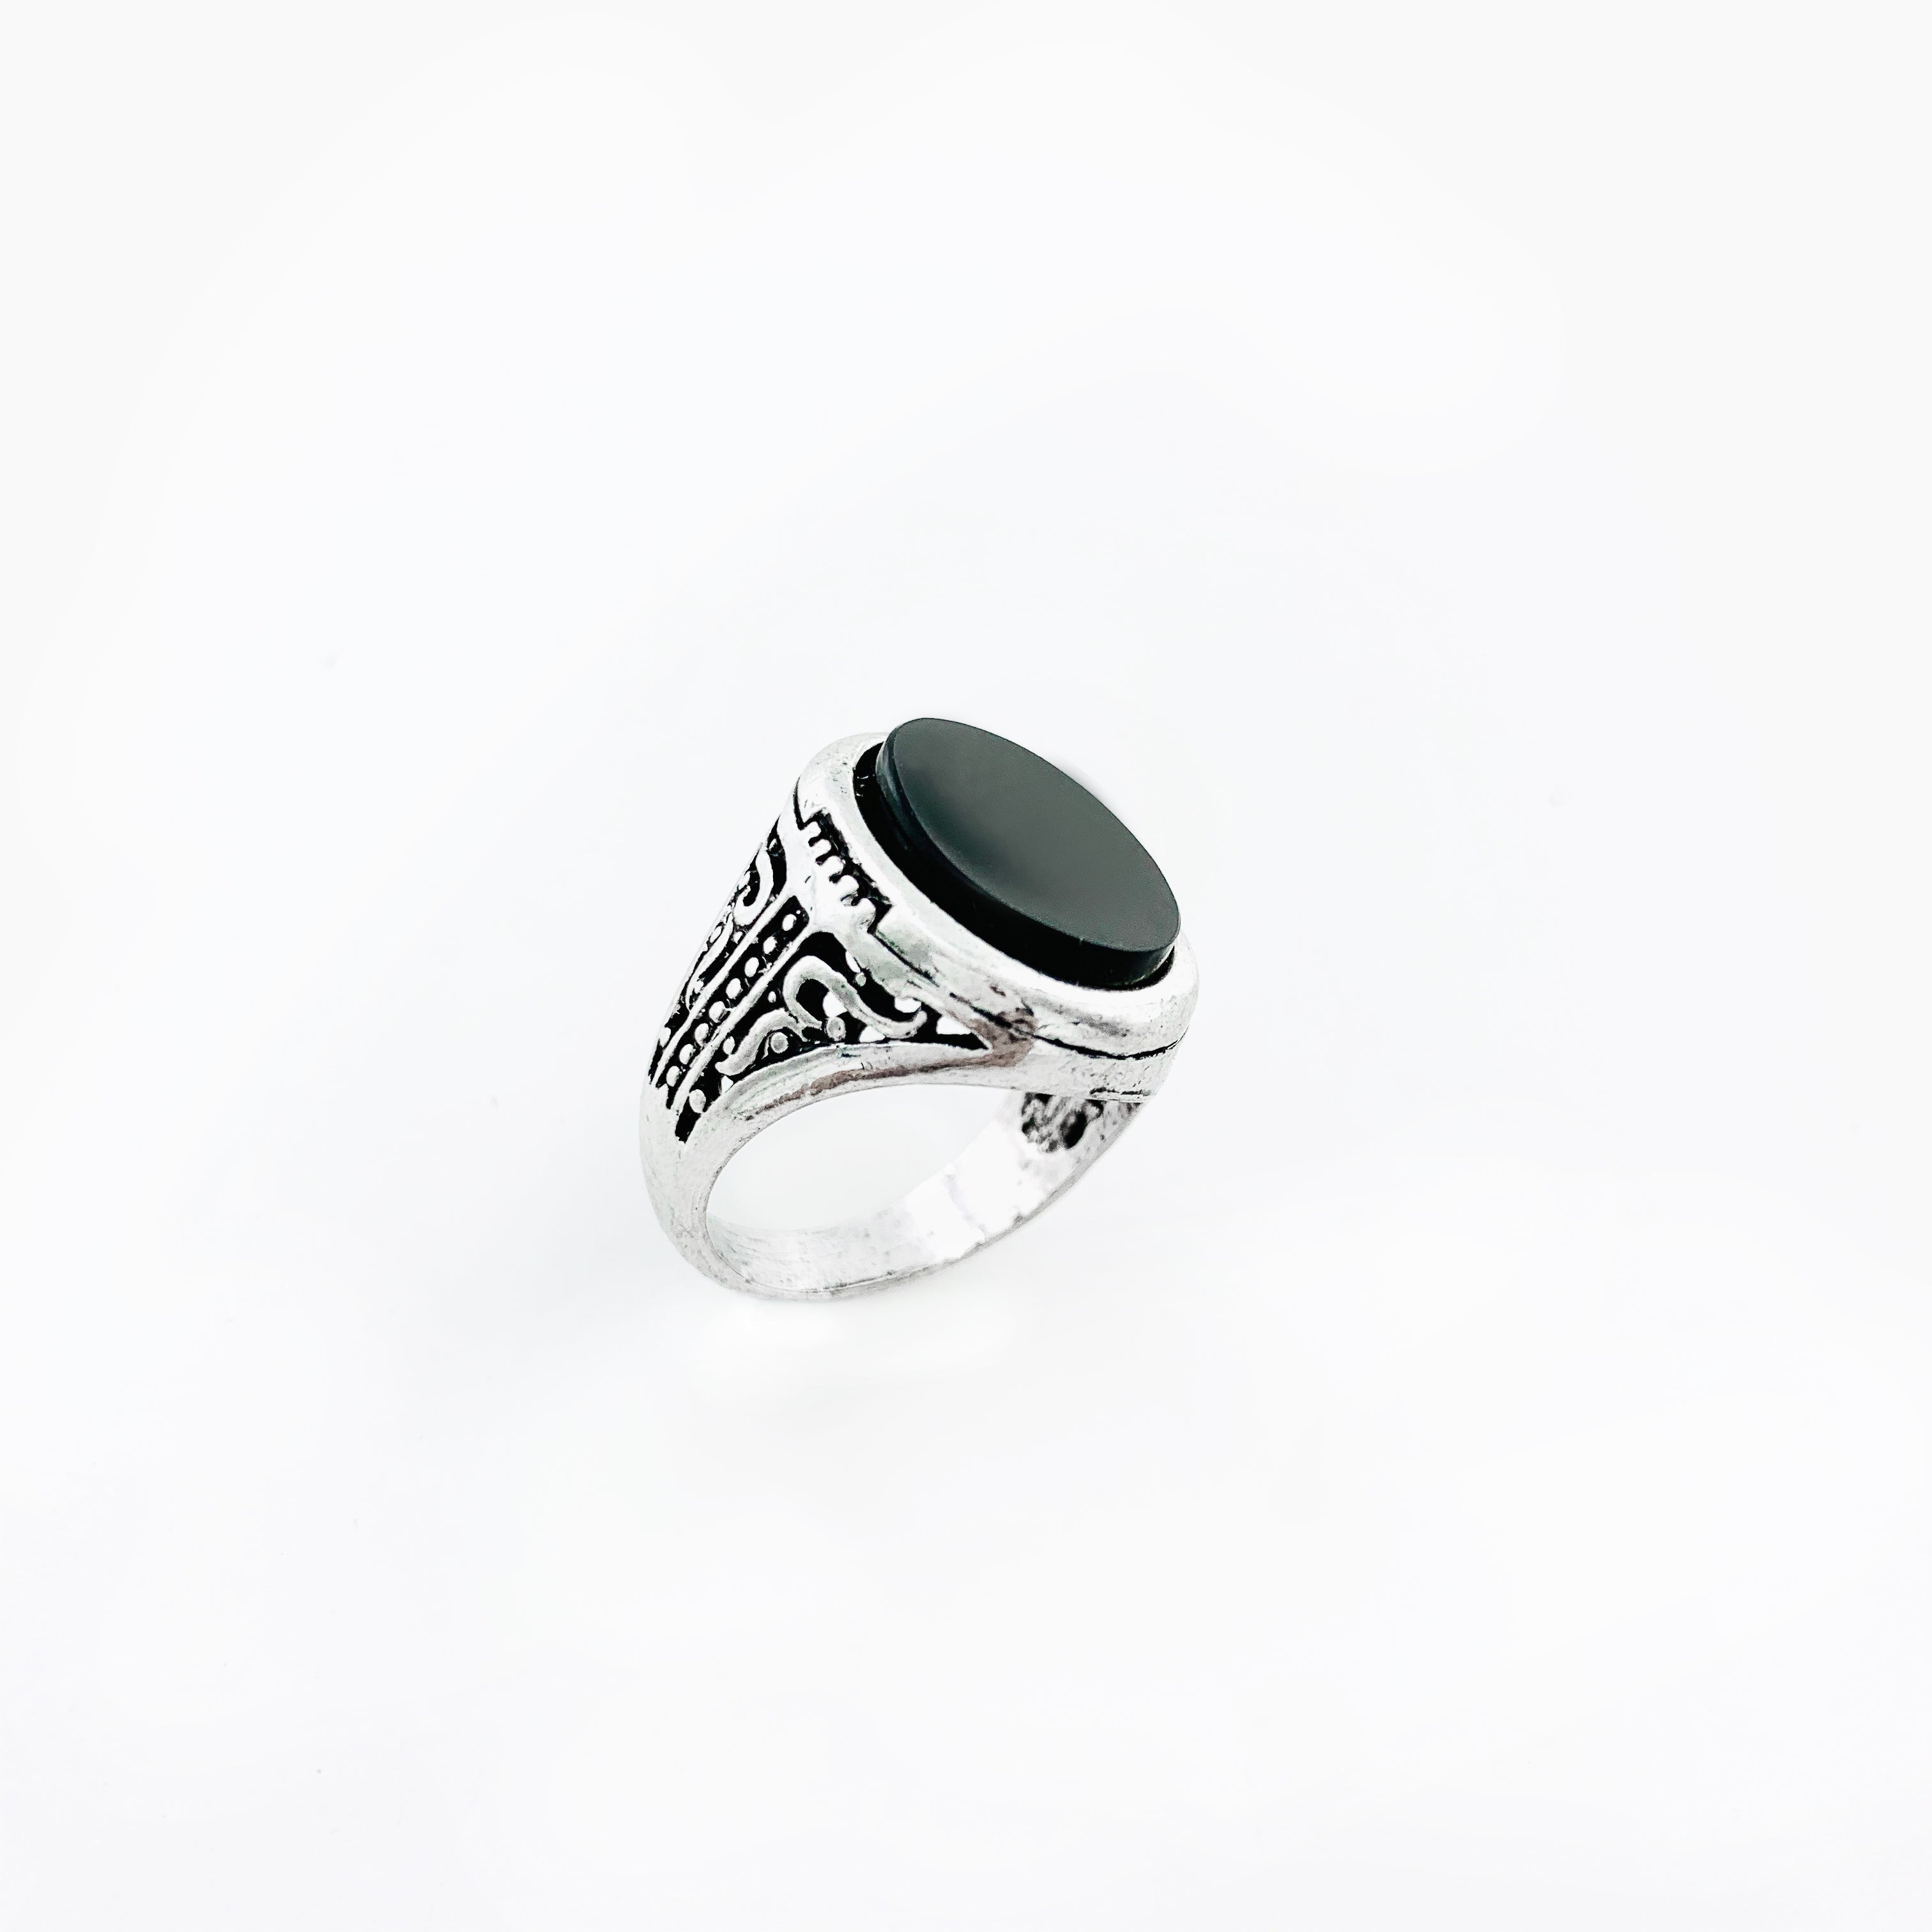 Art deco inspired silver ring with black stone